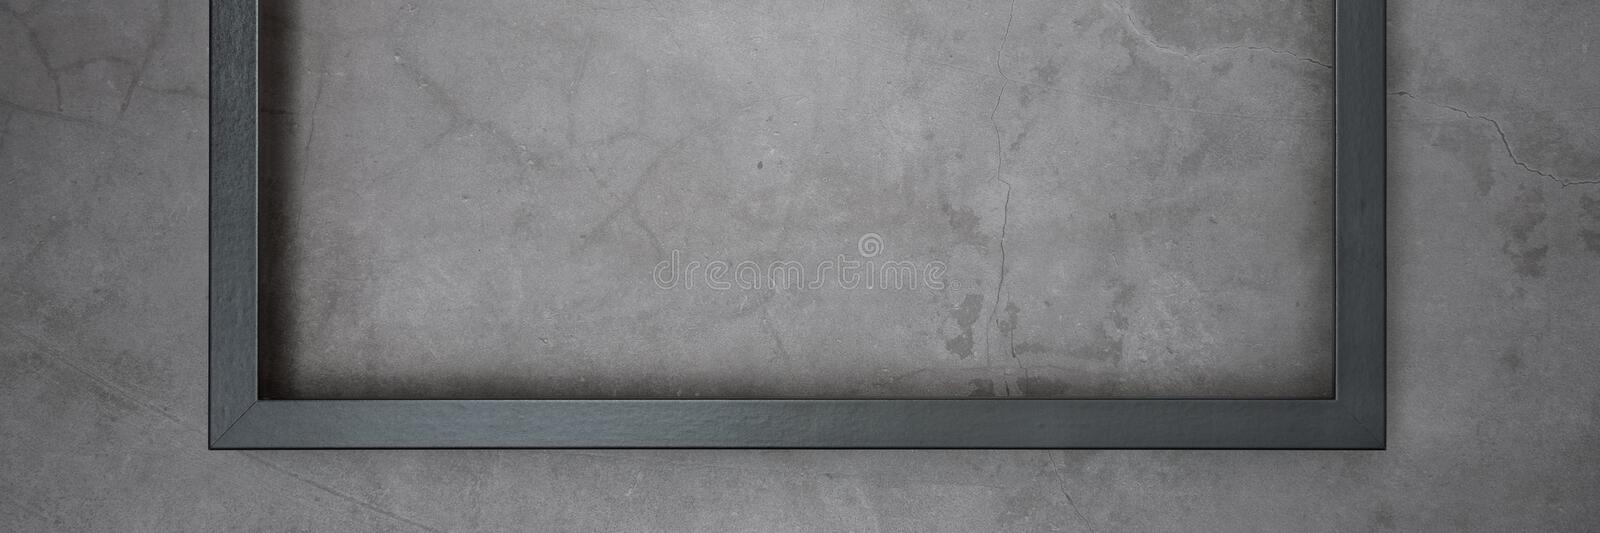 Dark frame for painting on a gray cement textured background royalty free stock image